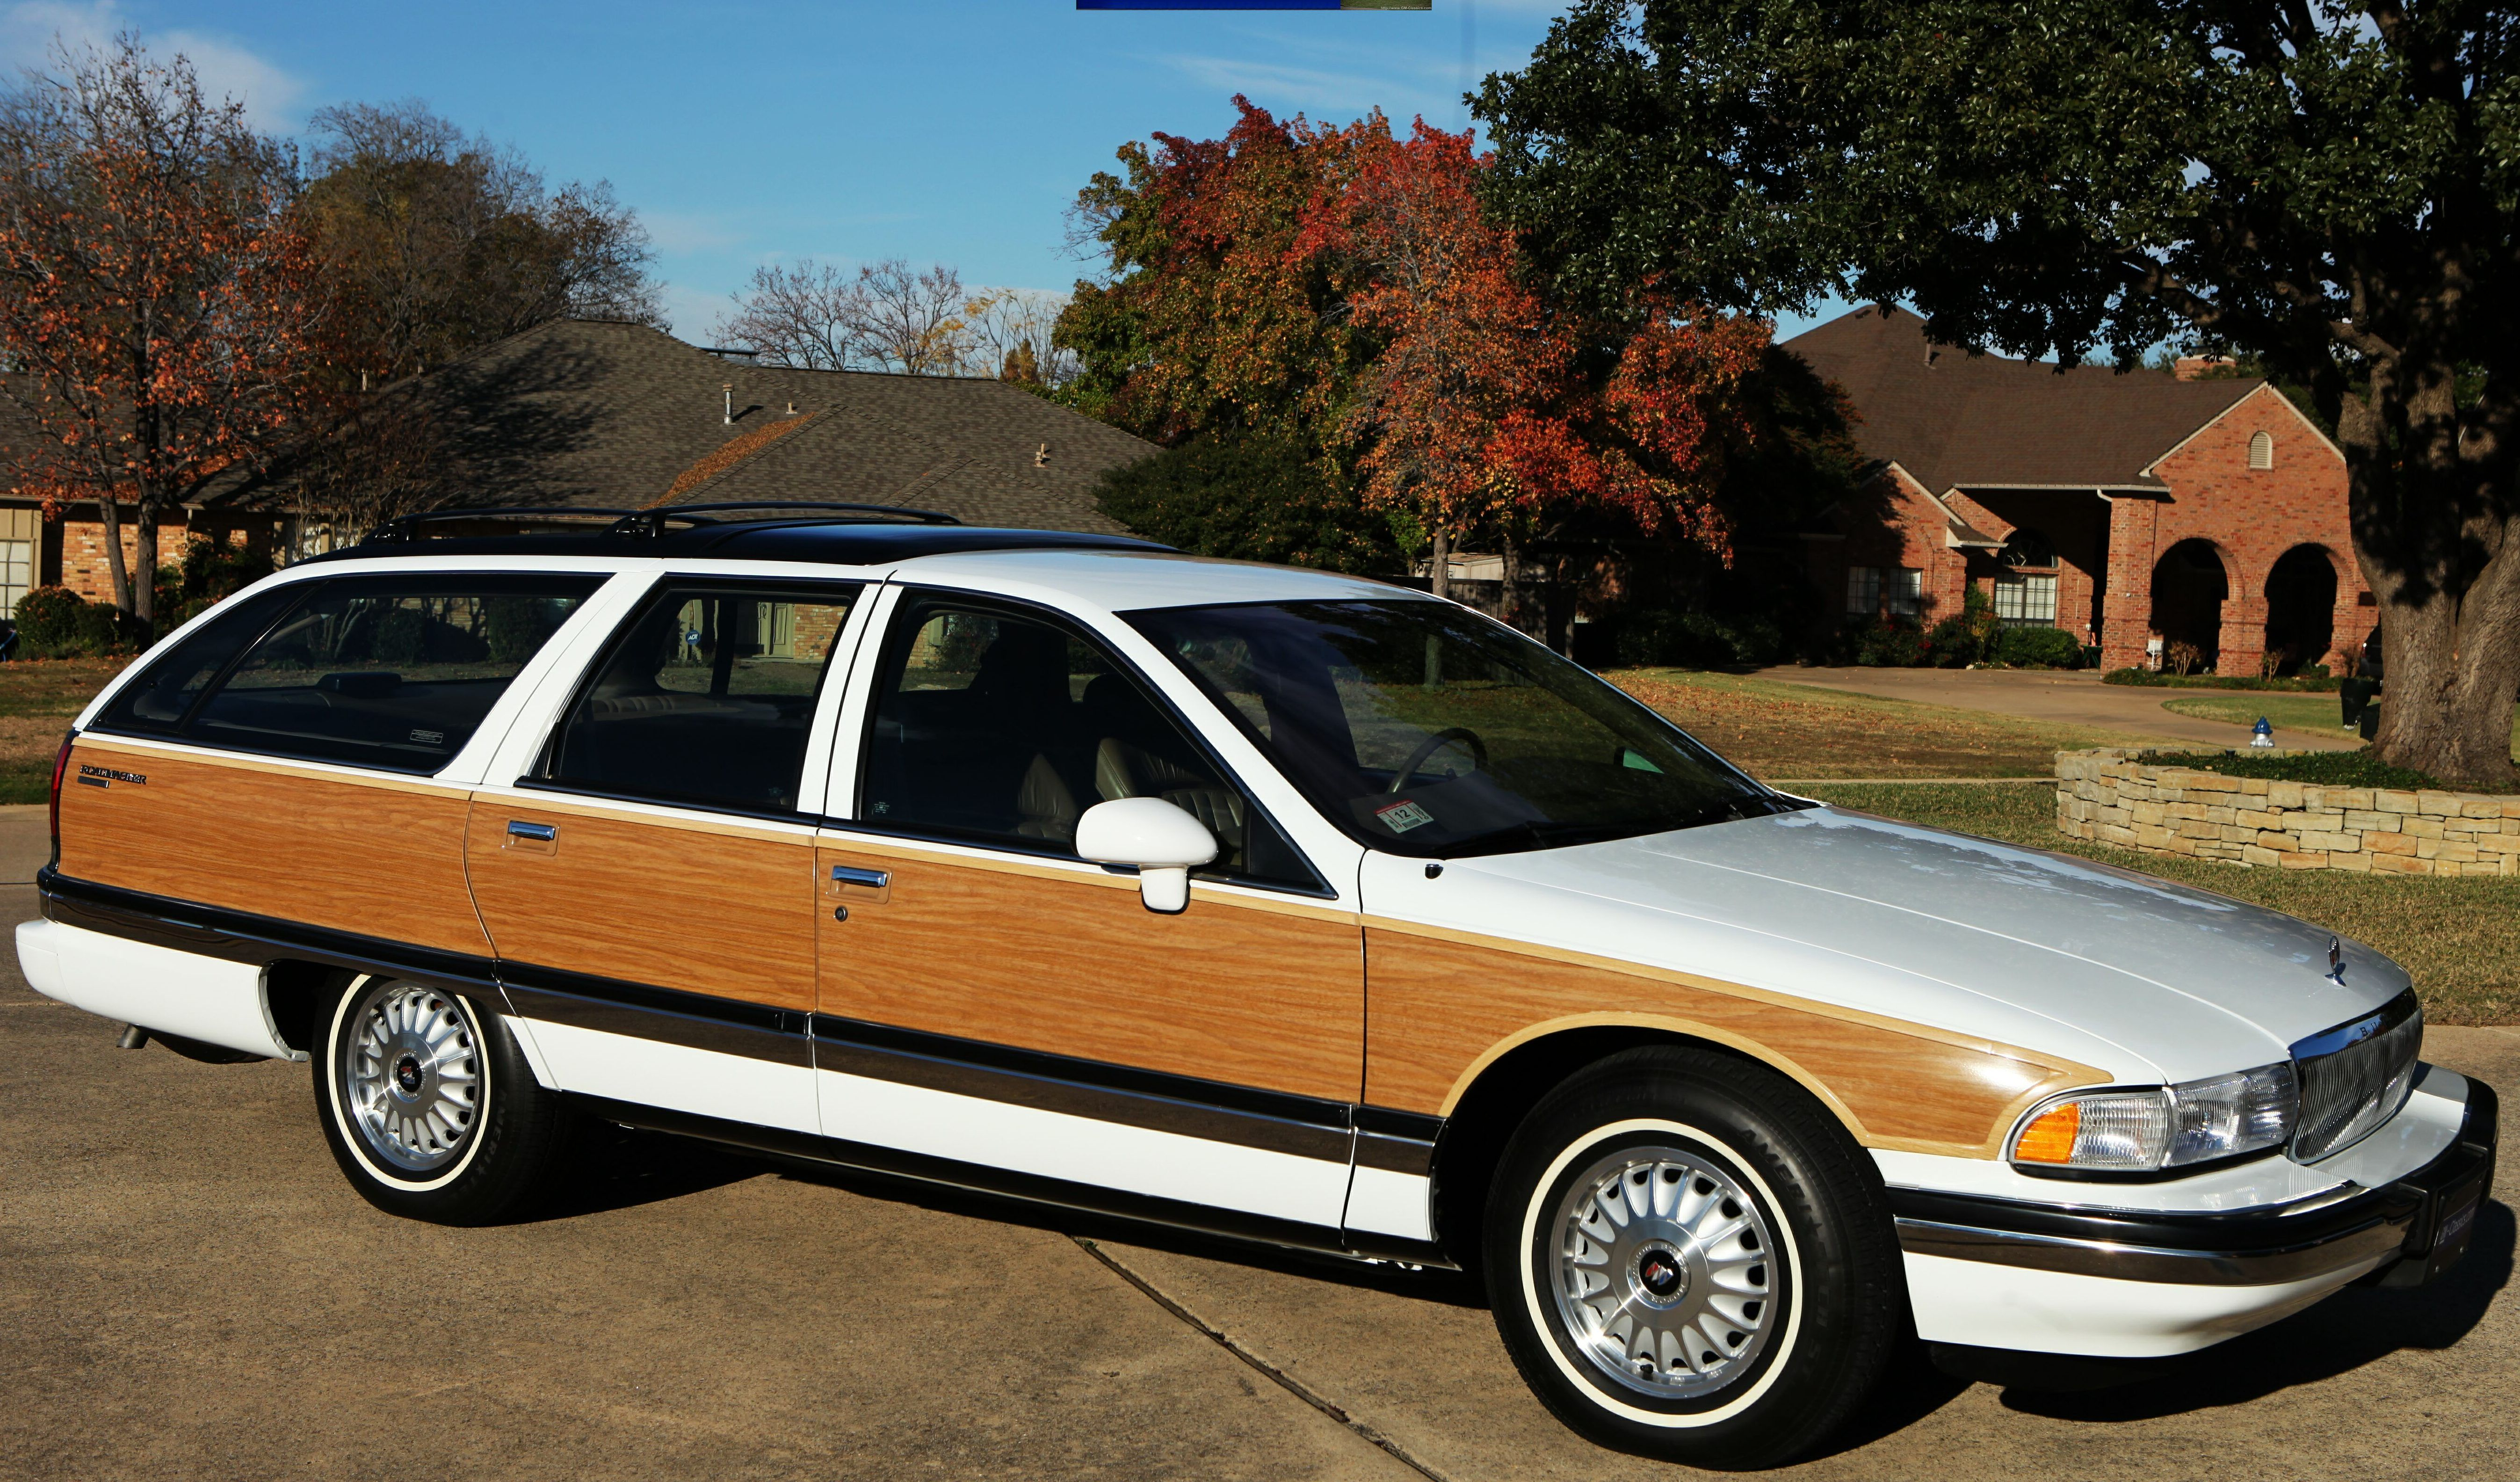 s www hotcars com buying one of these suvs is the same asrb buick roadmaster estate mcsmk8 com_ e1548883718717 jpg